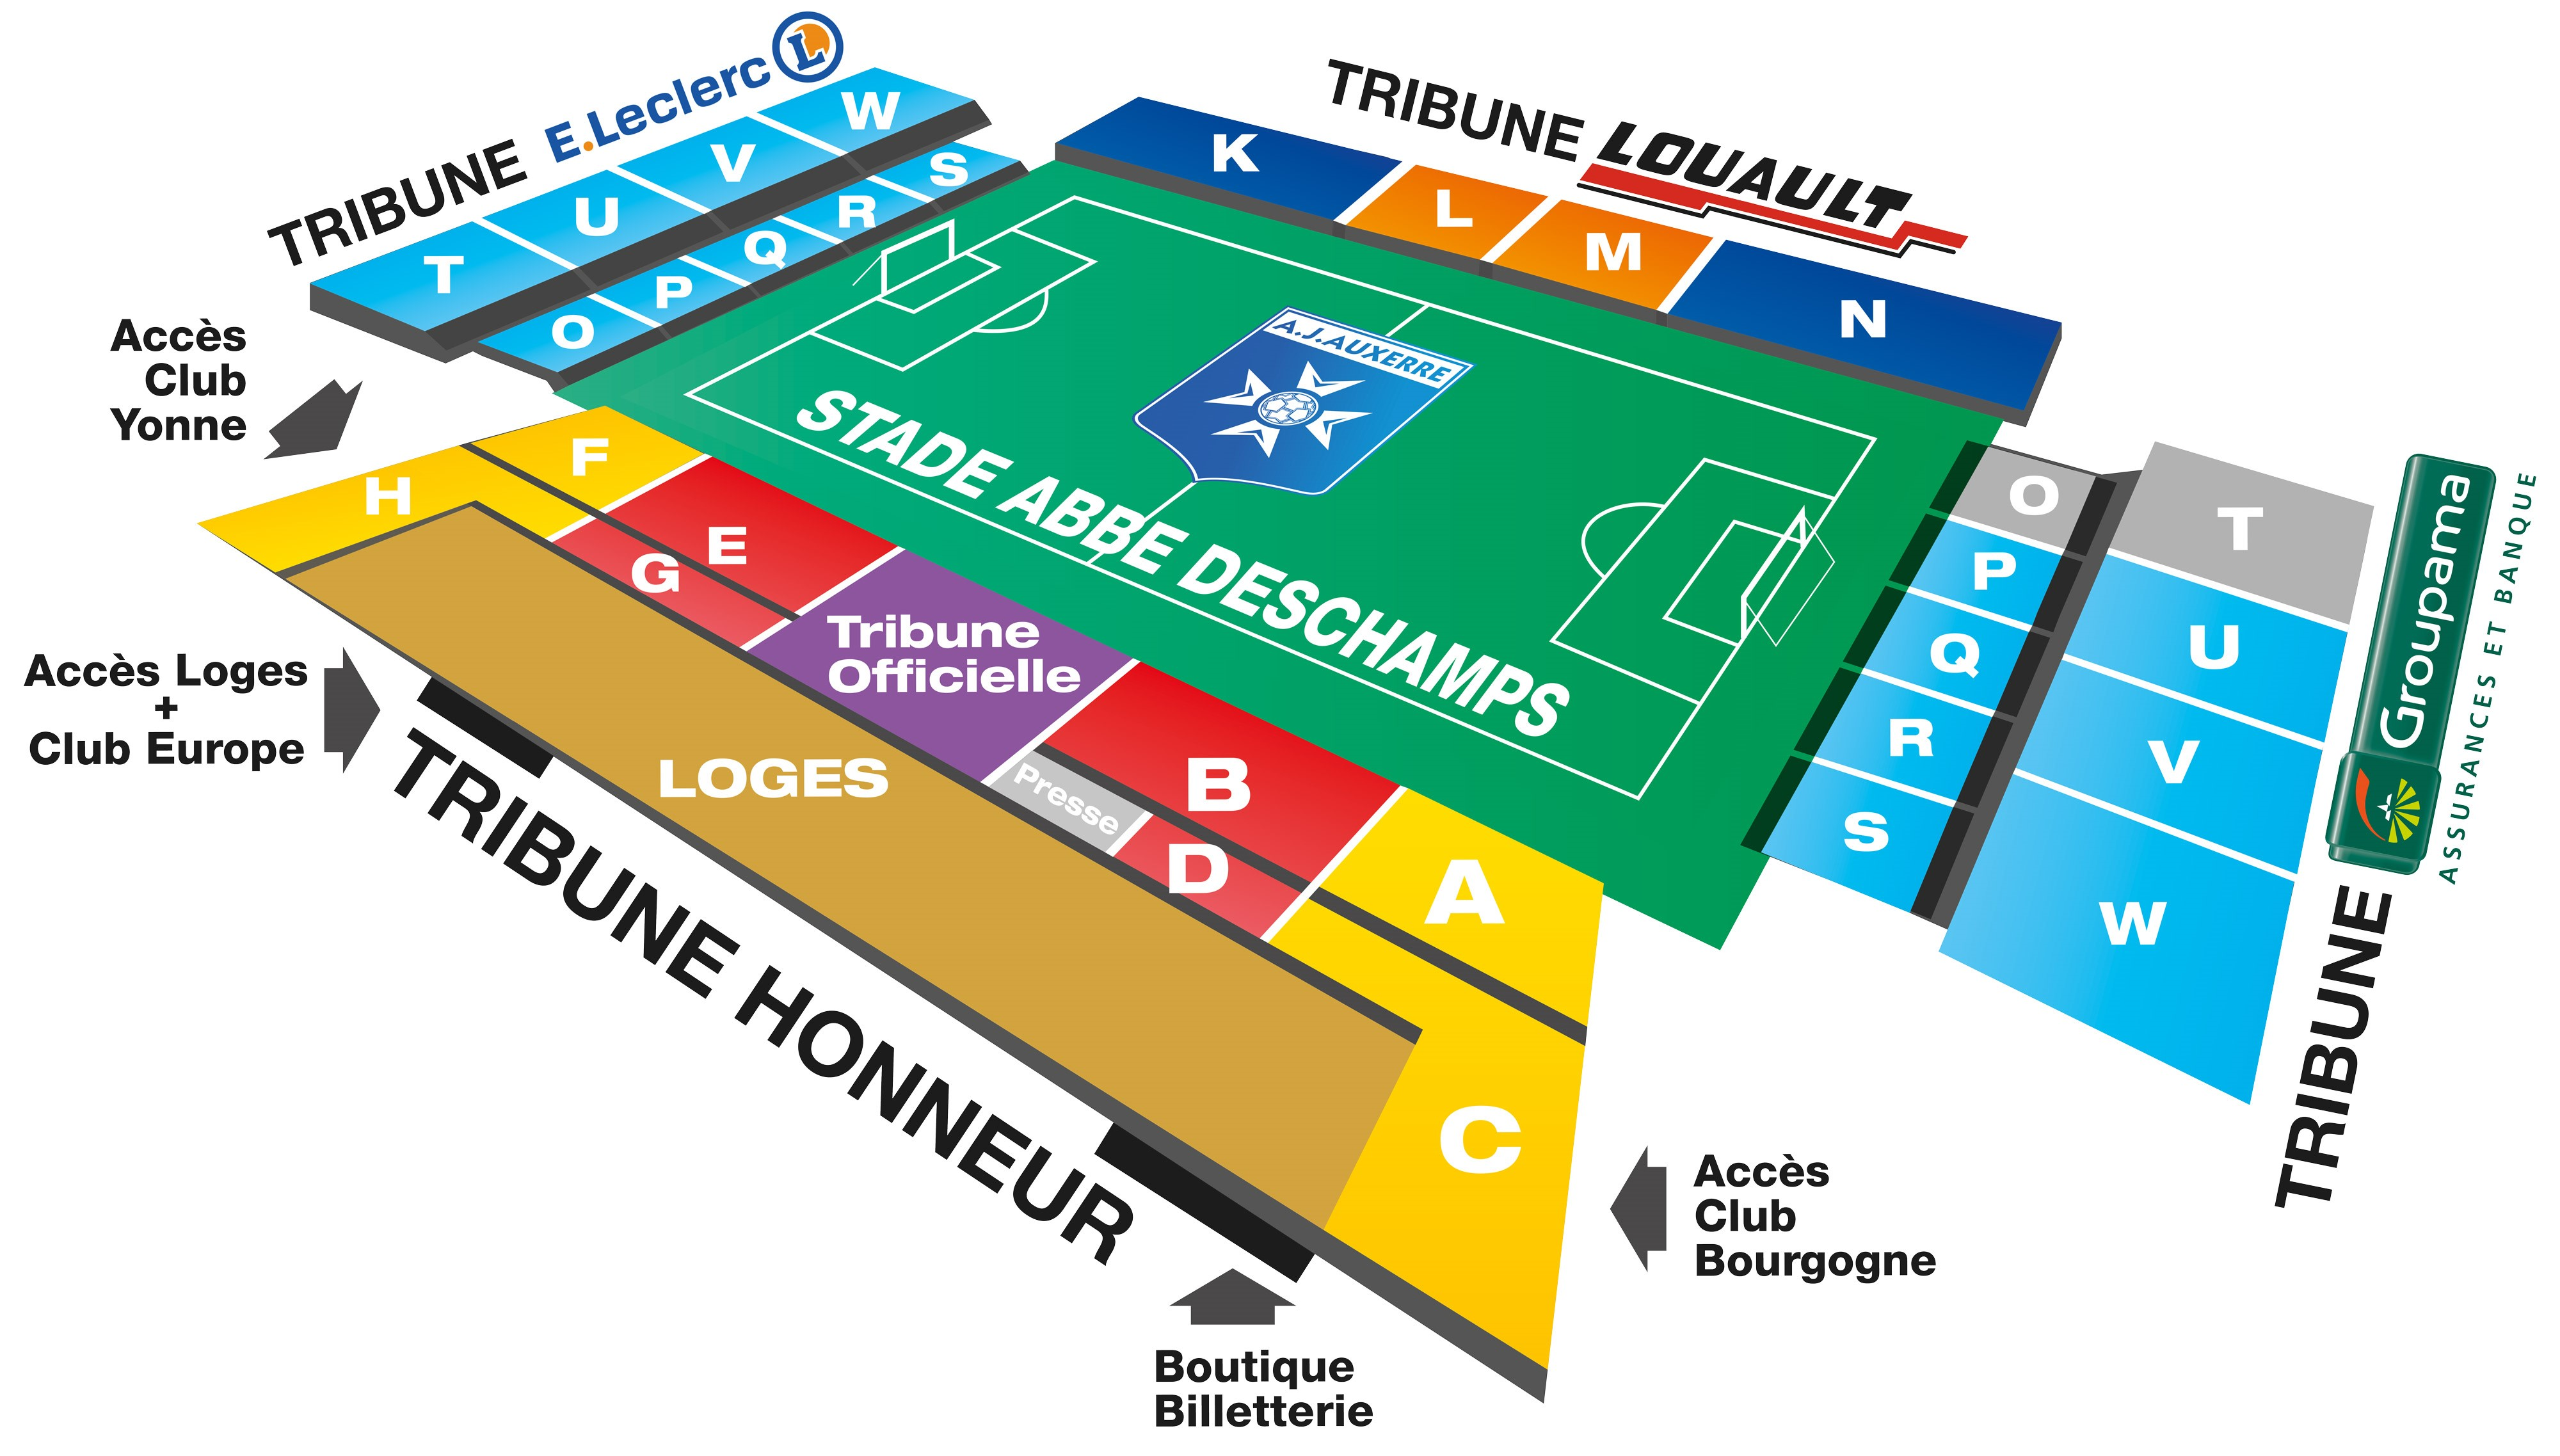 Stade Abbé Deschamps